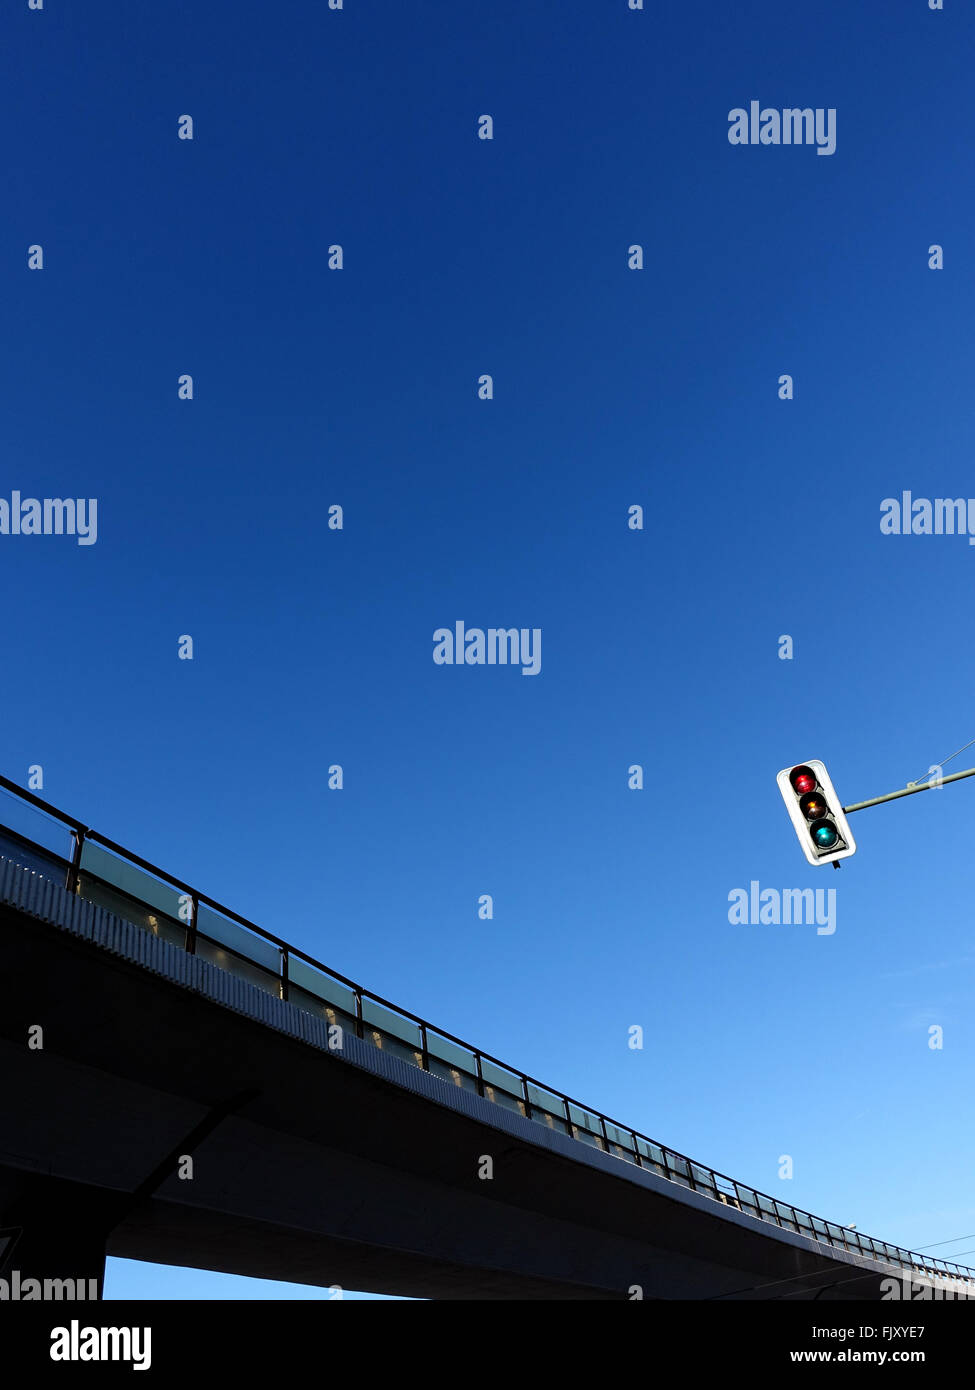 Low Angle View Of Signal And Elevated Road Against Clear Blue Sky - Stock Image